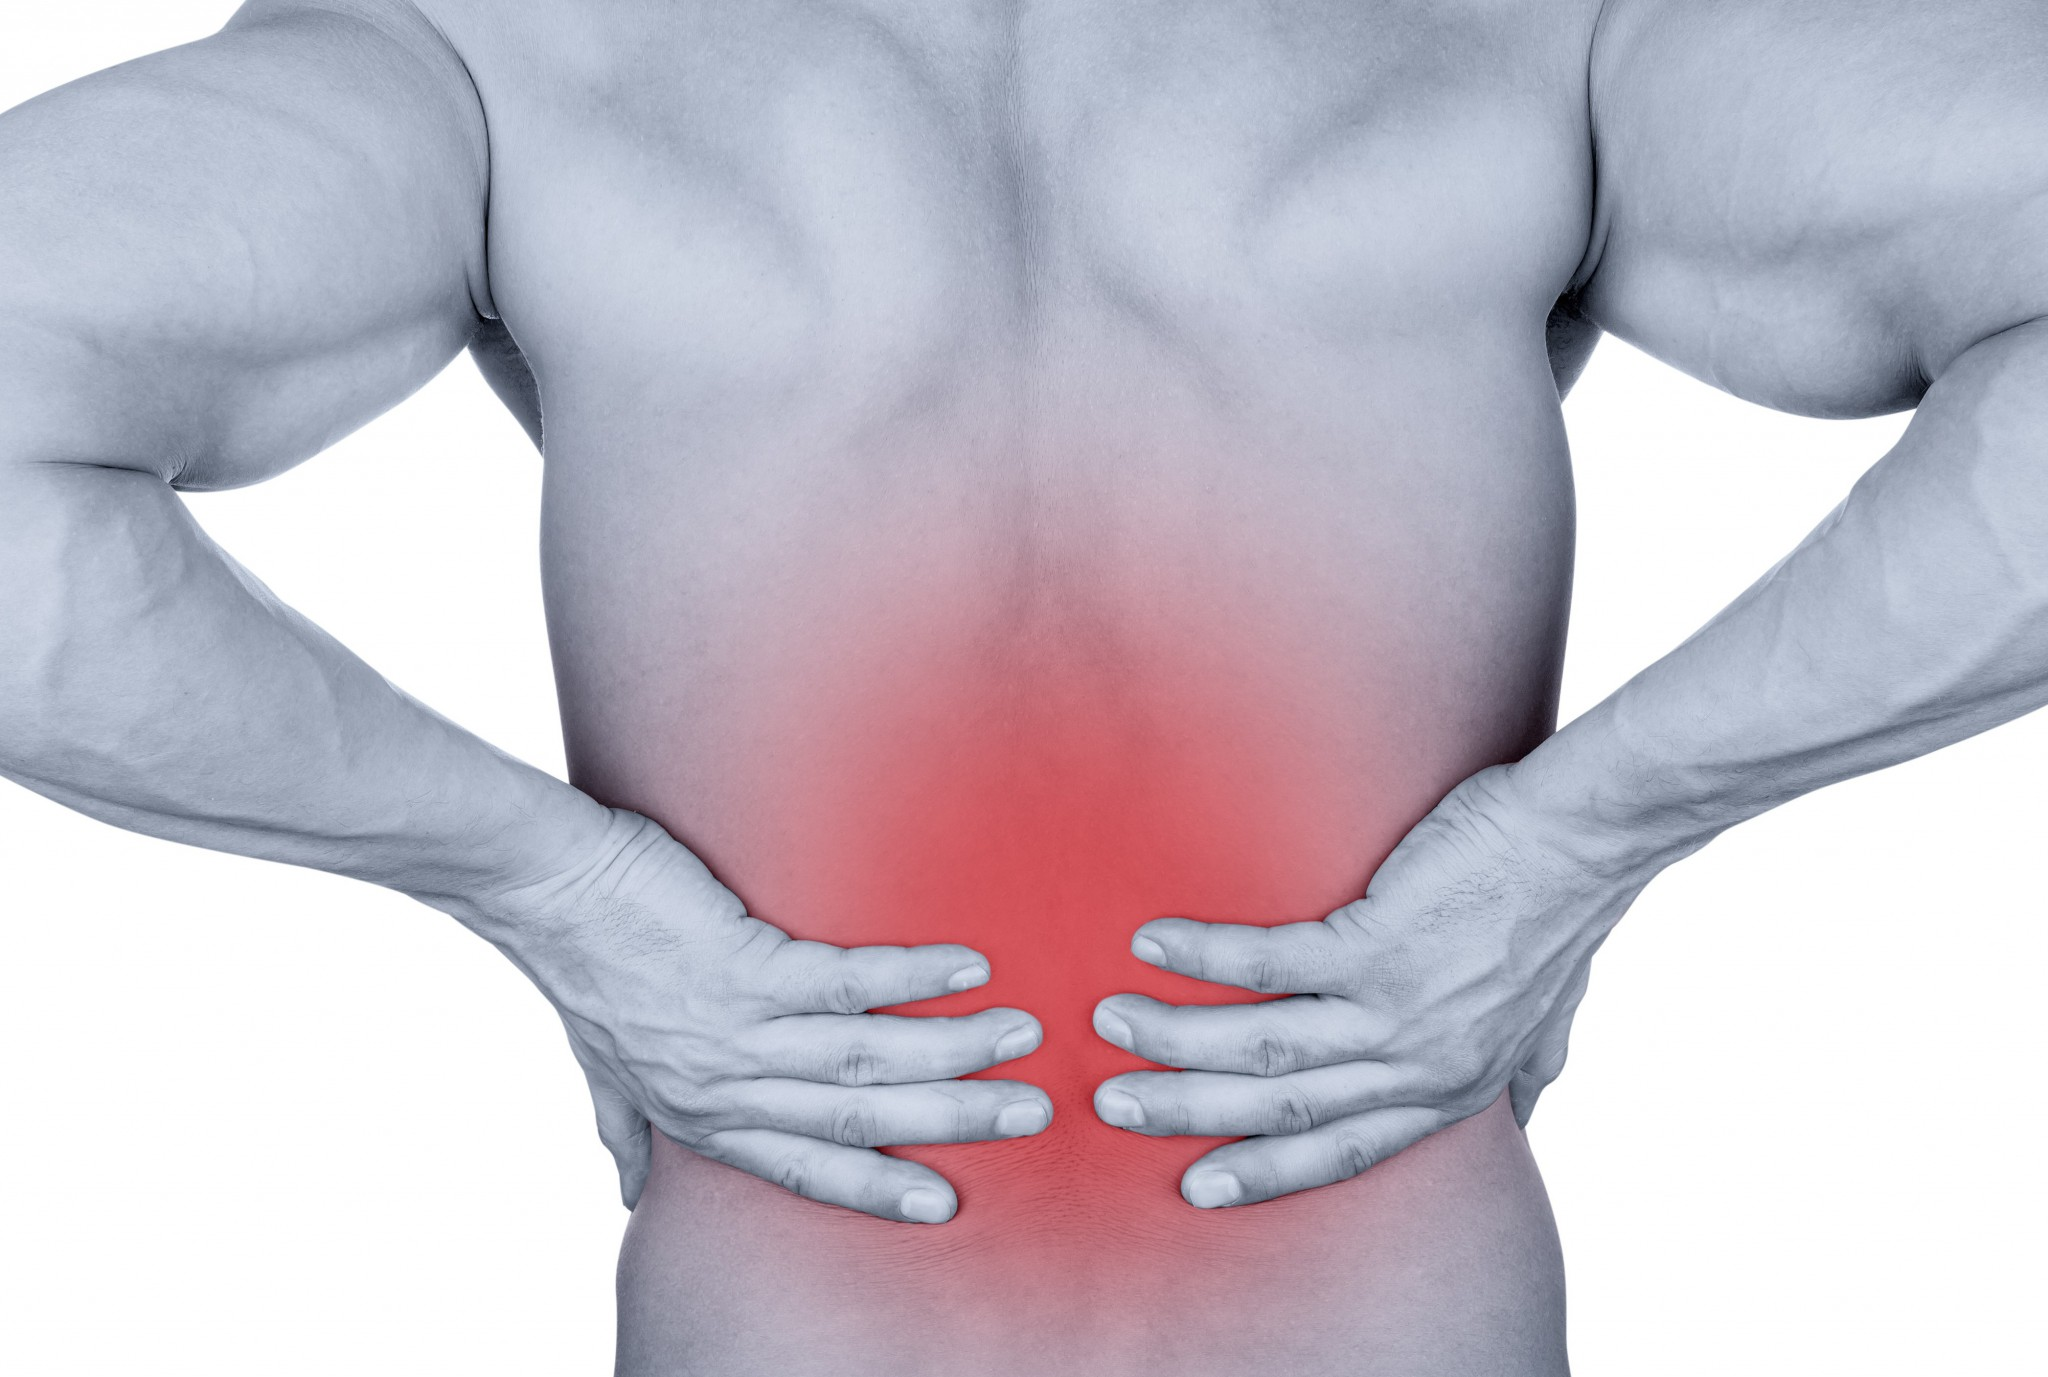 Helpful Non-surgical Treatments For Lower Back Pain